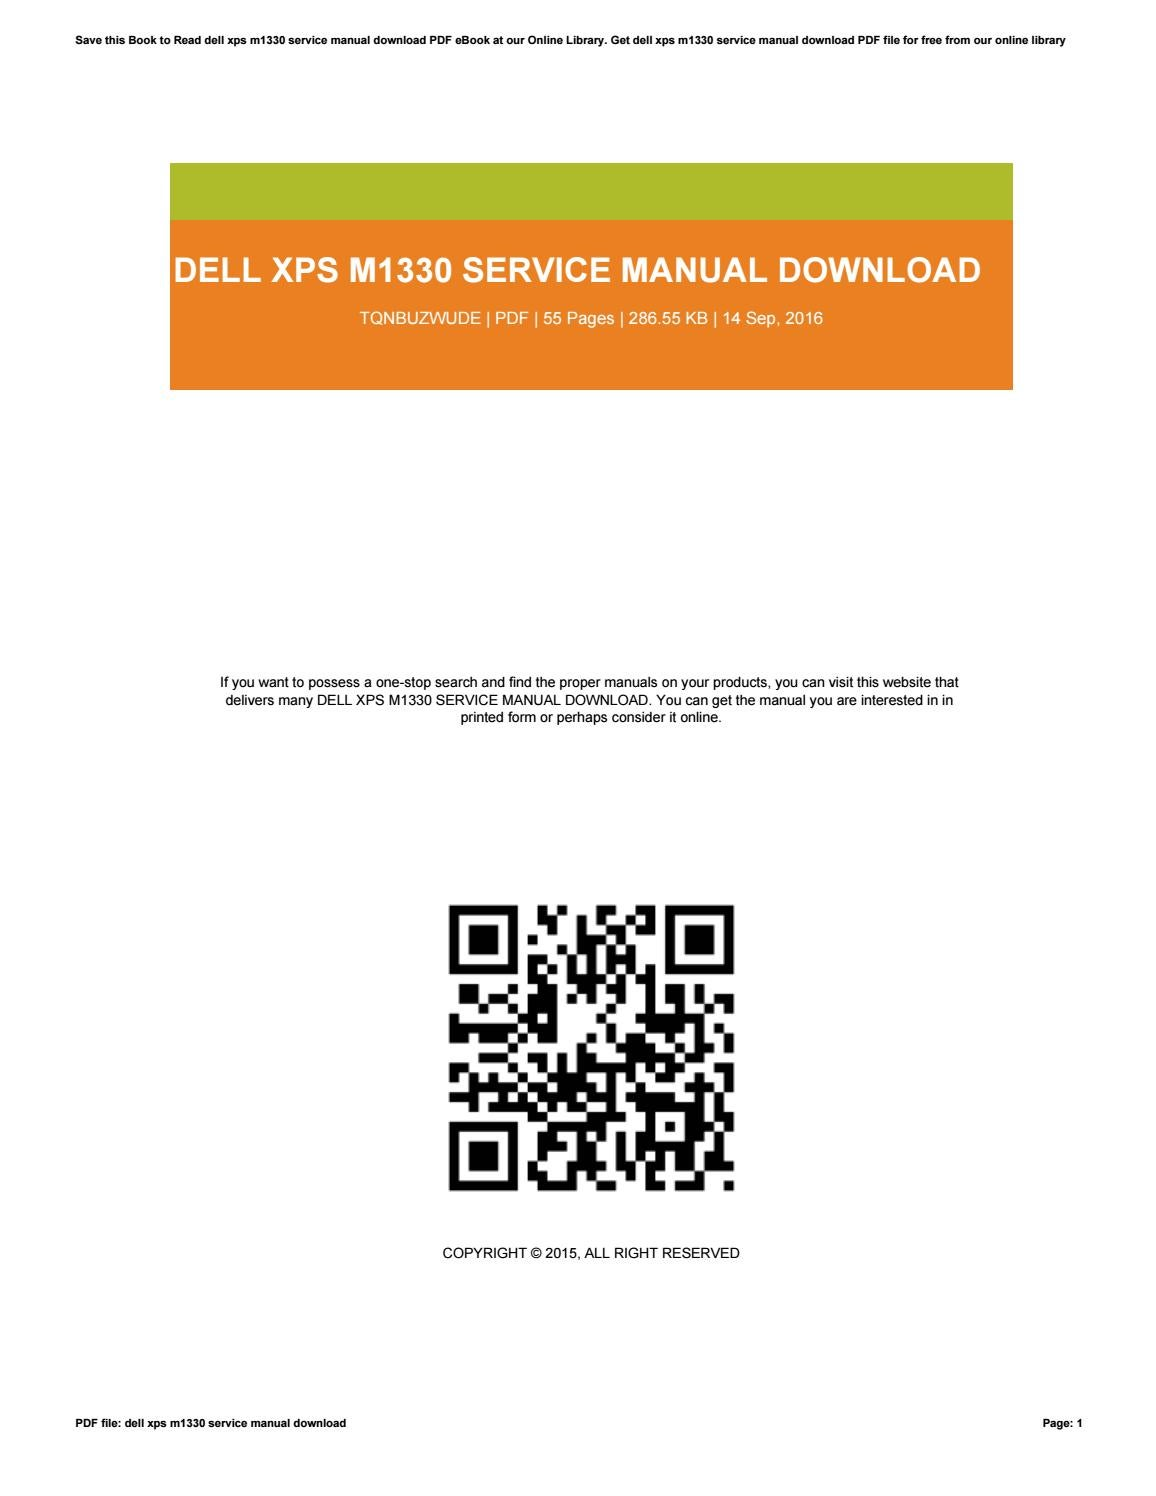 dell xps m1330 service manual download by randellcorbett2178 issuu rh issuu com dell xps m1330 service manual pdf Del XPS M1330